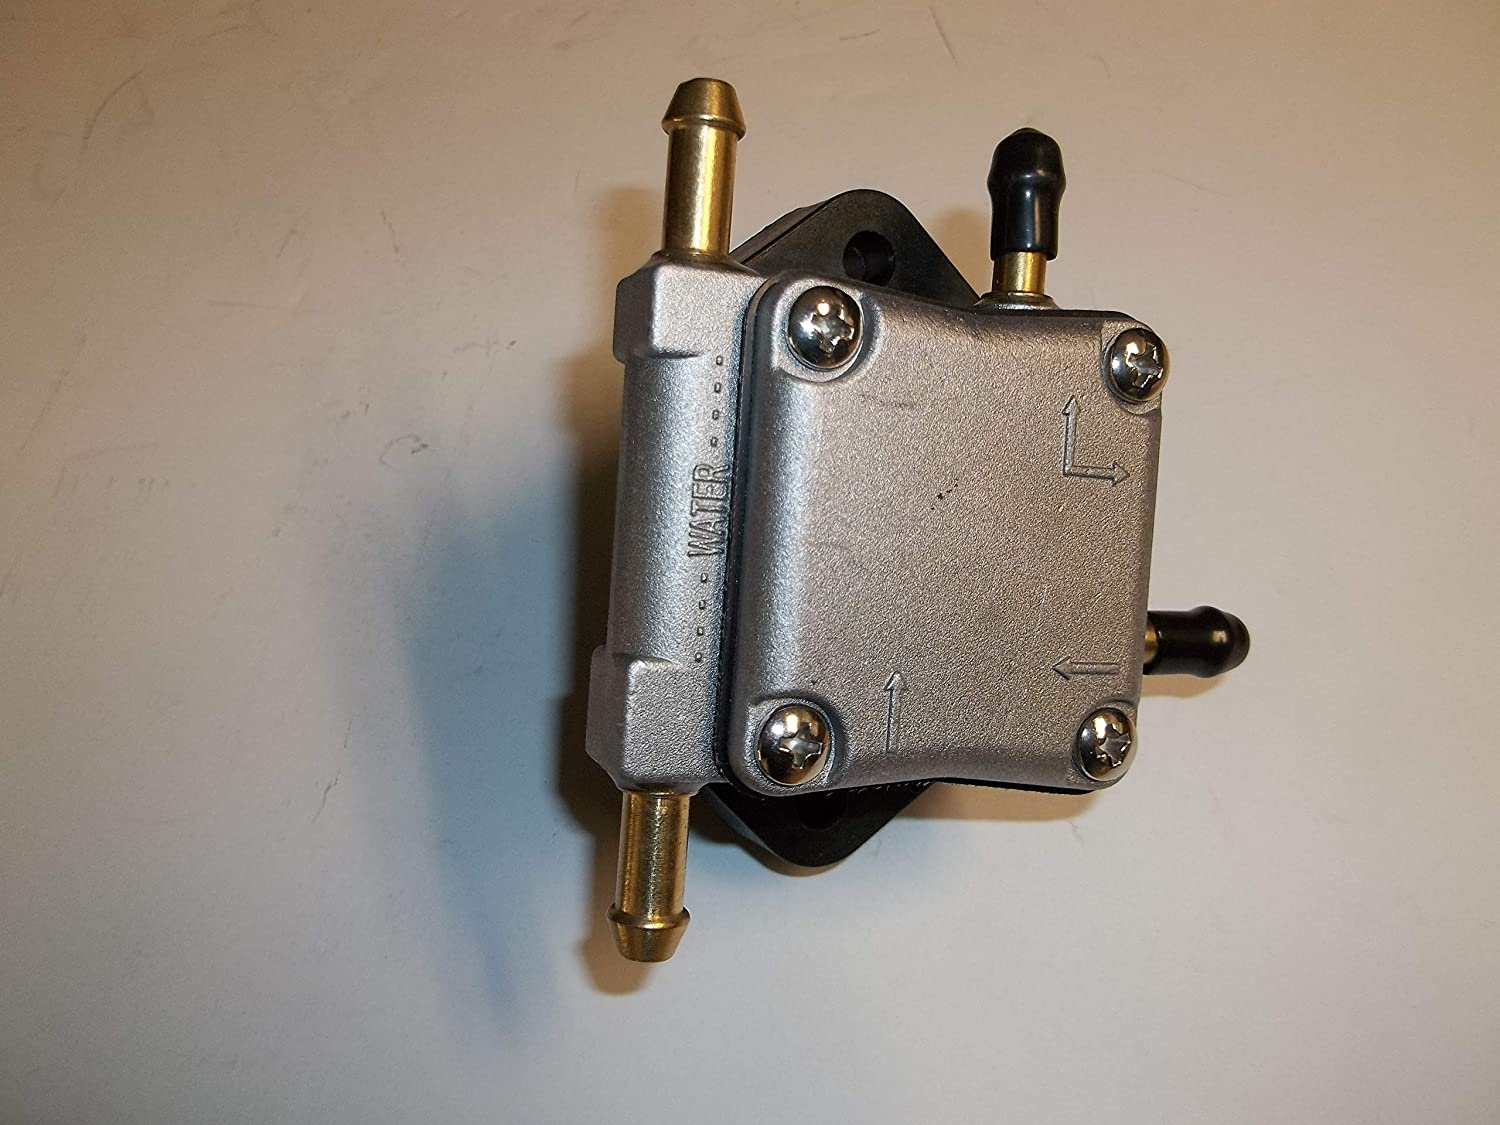 RPS New Outboard Engine Fuel Pump 4 Stroke Mercury 30 40 50 60 hp 3 or 4 Cylinder